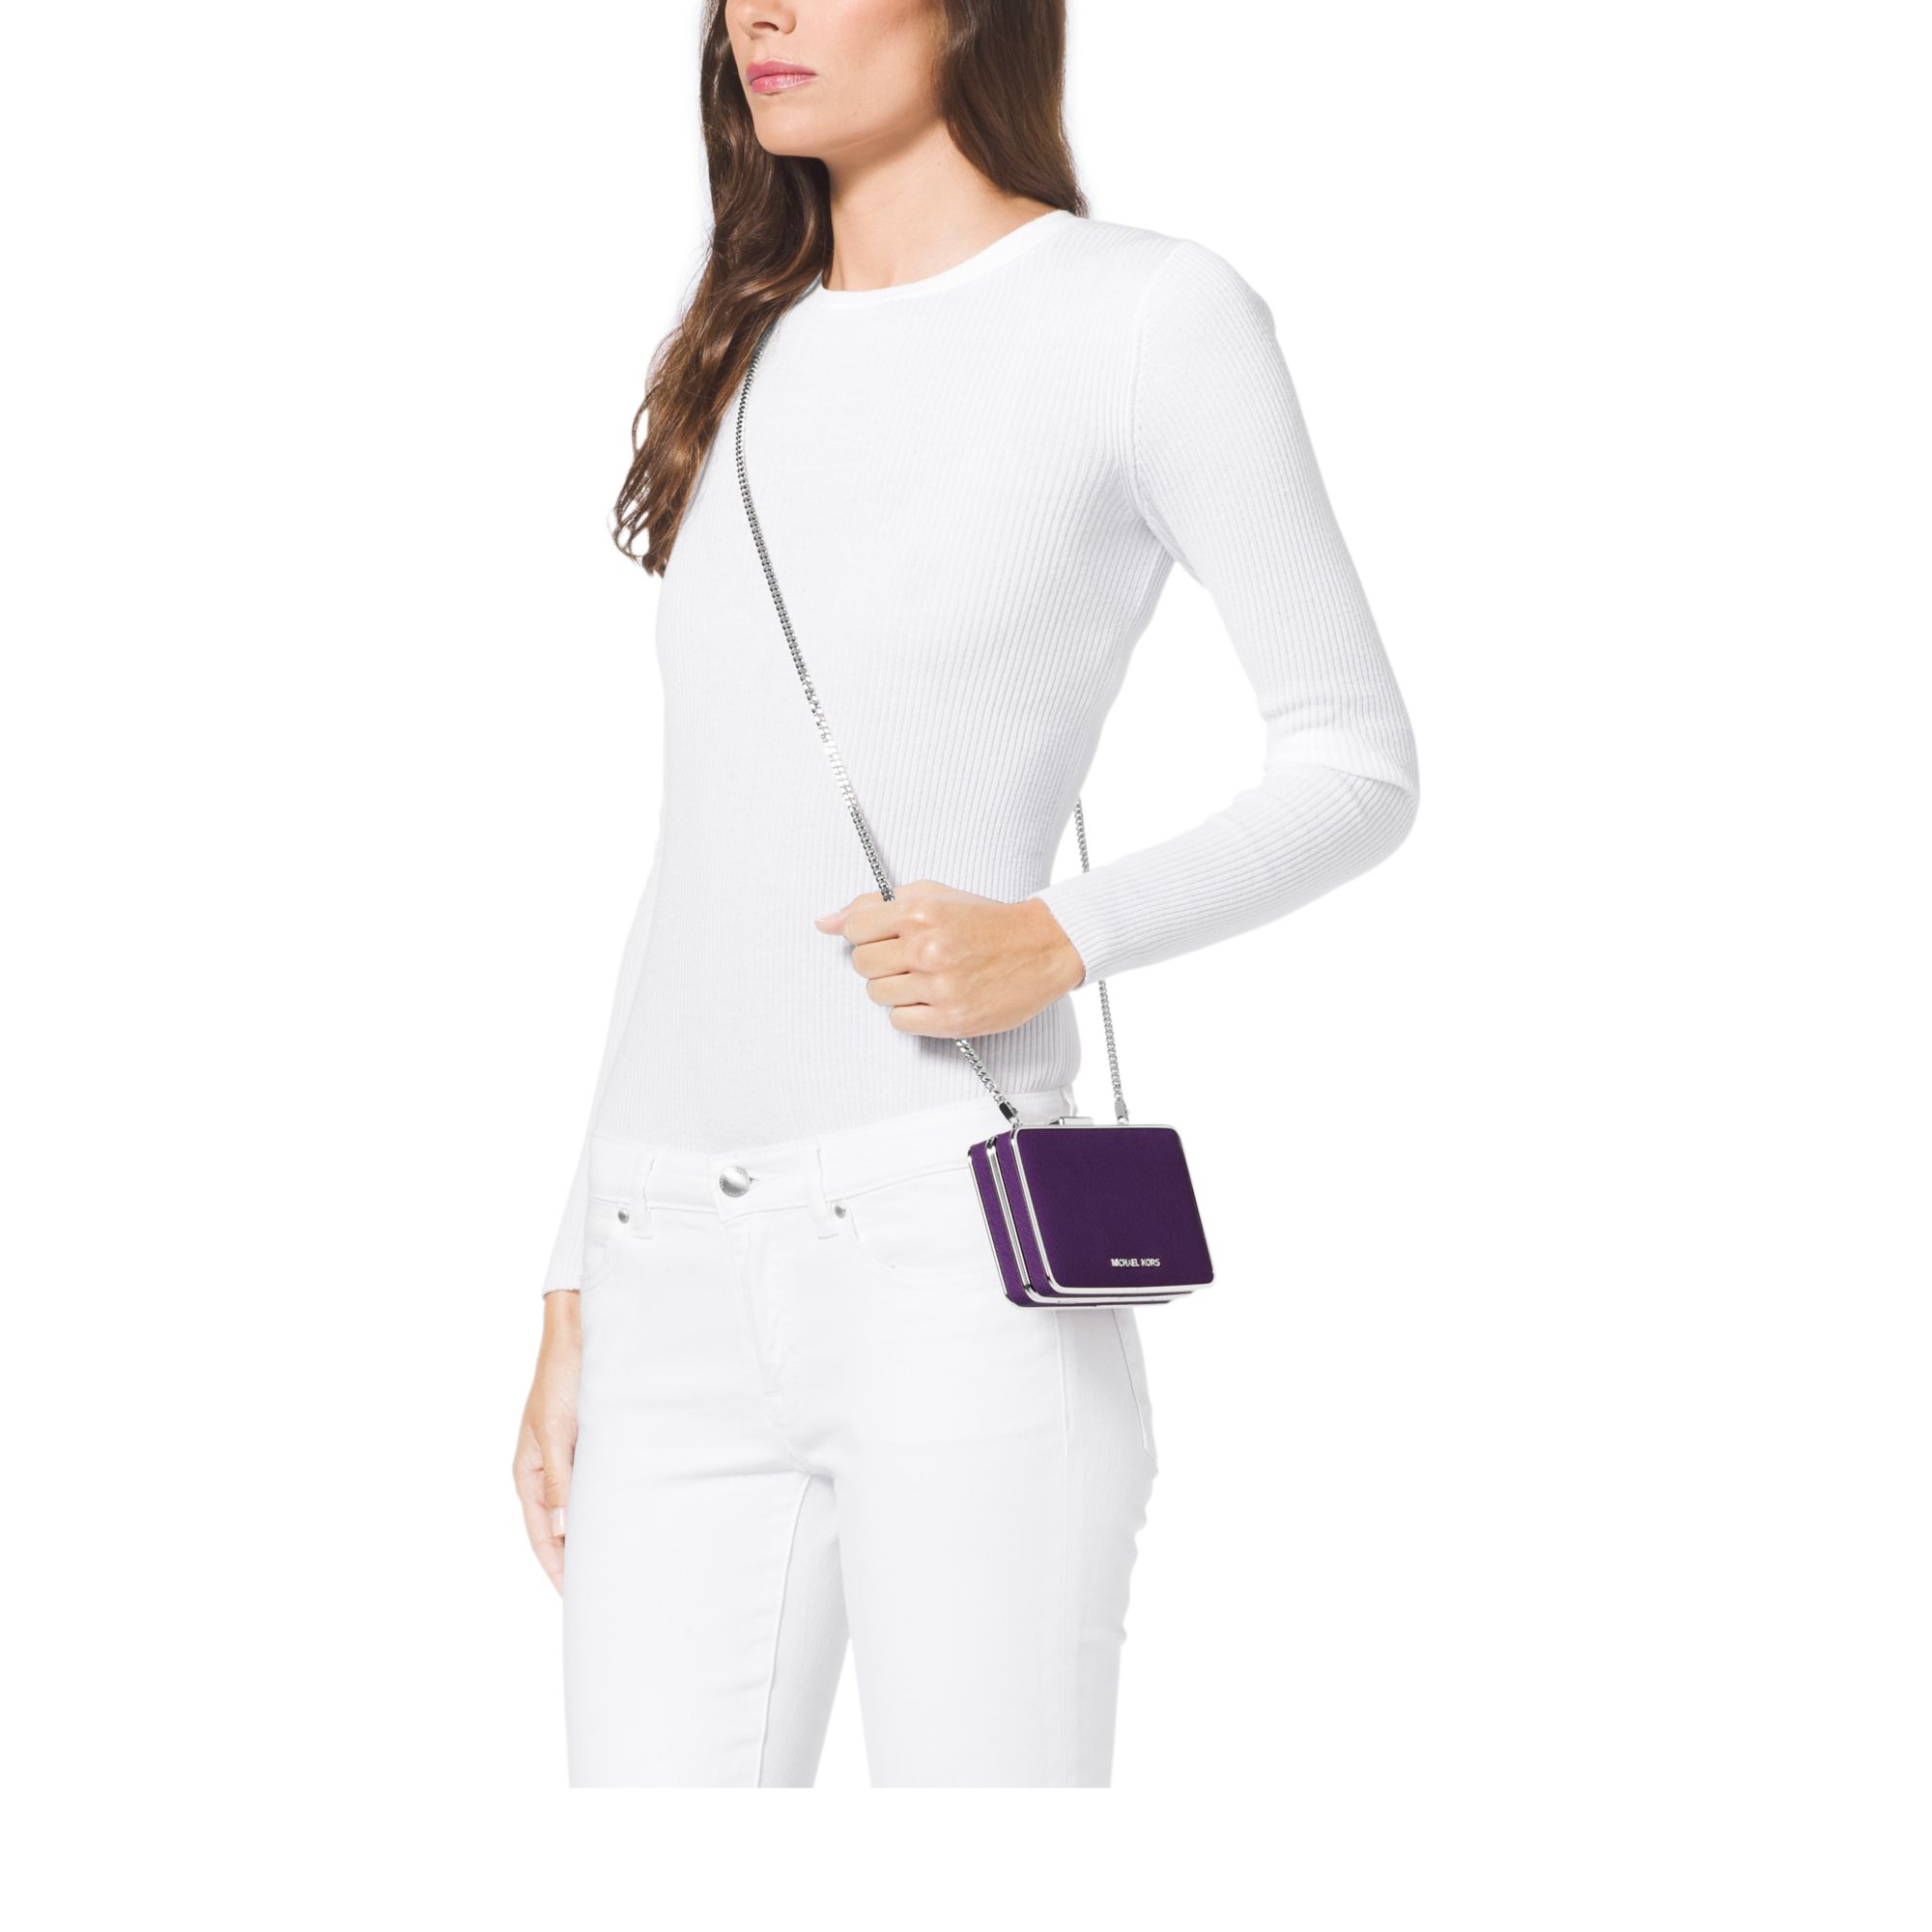 3fd0797a4636 Lyst Michael Kors Elsie Saffiano Leather Box Clutch In Purple. Michael Kors  Tina Wallet Clutch Crossbody Damson